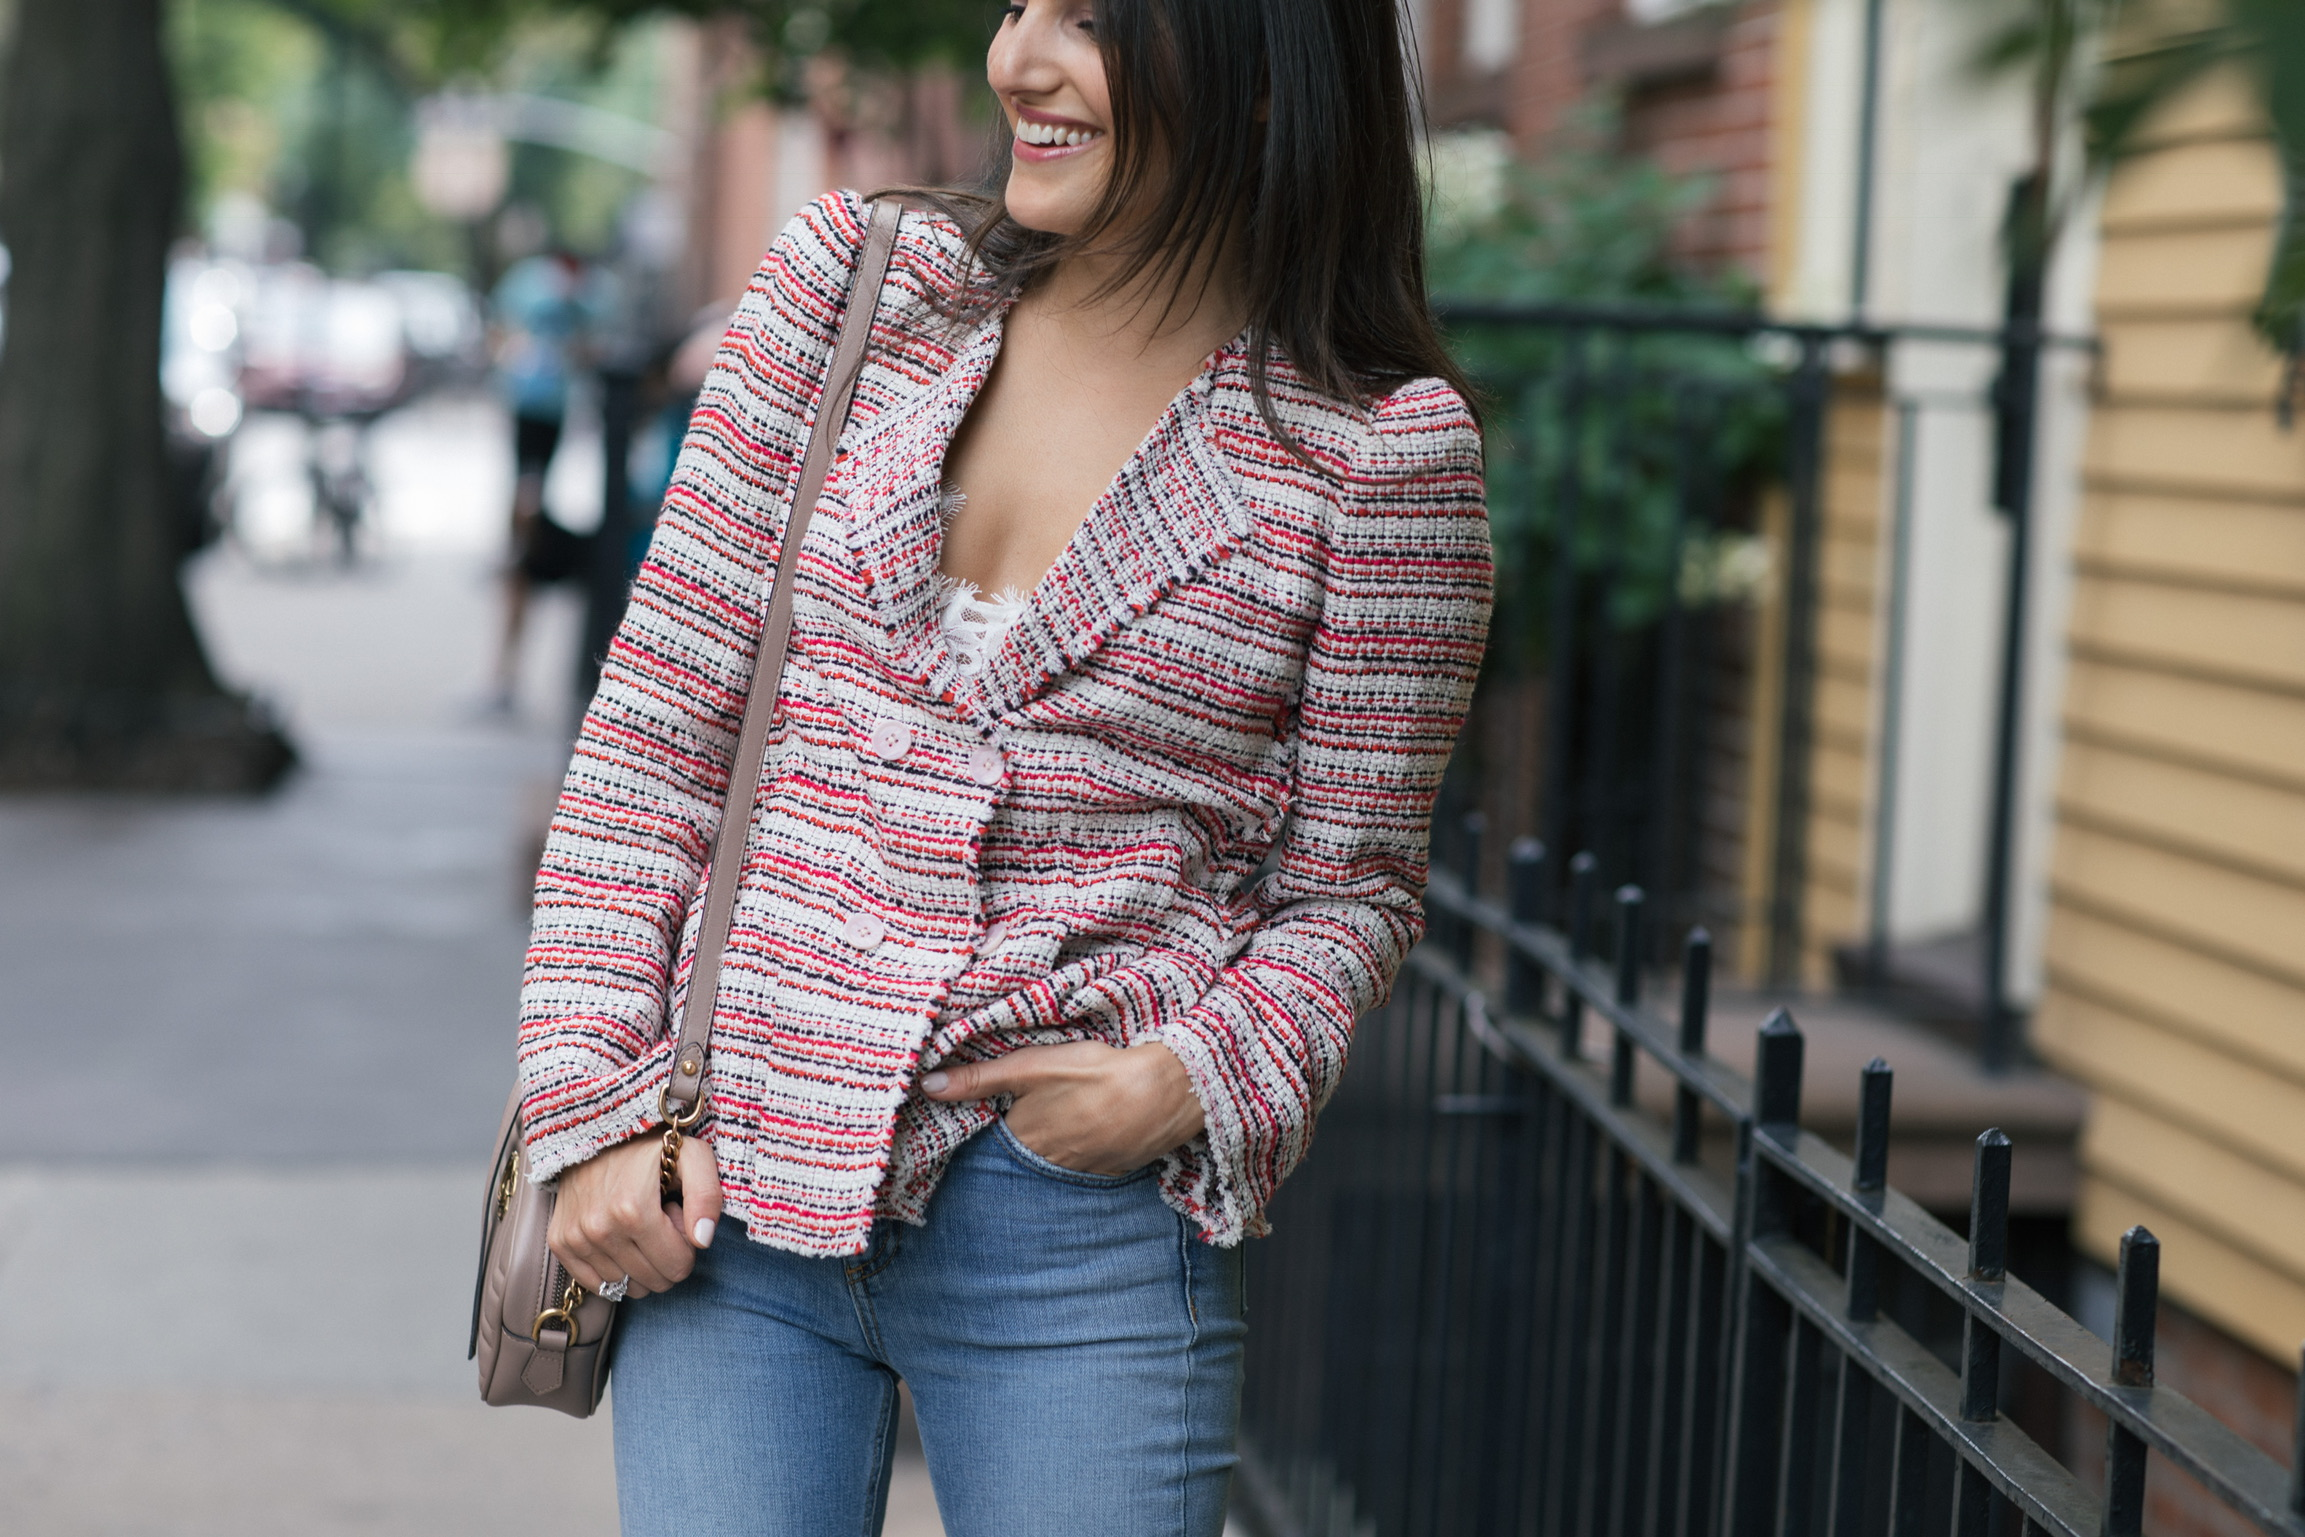 corporate and lifestyle blogger That Pencil Skirt wearing a Rebecca Taylor double breast tweed blazer and rag and bone step hem jeans